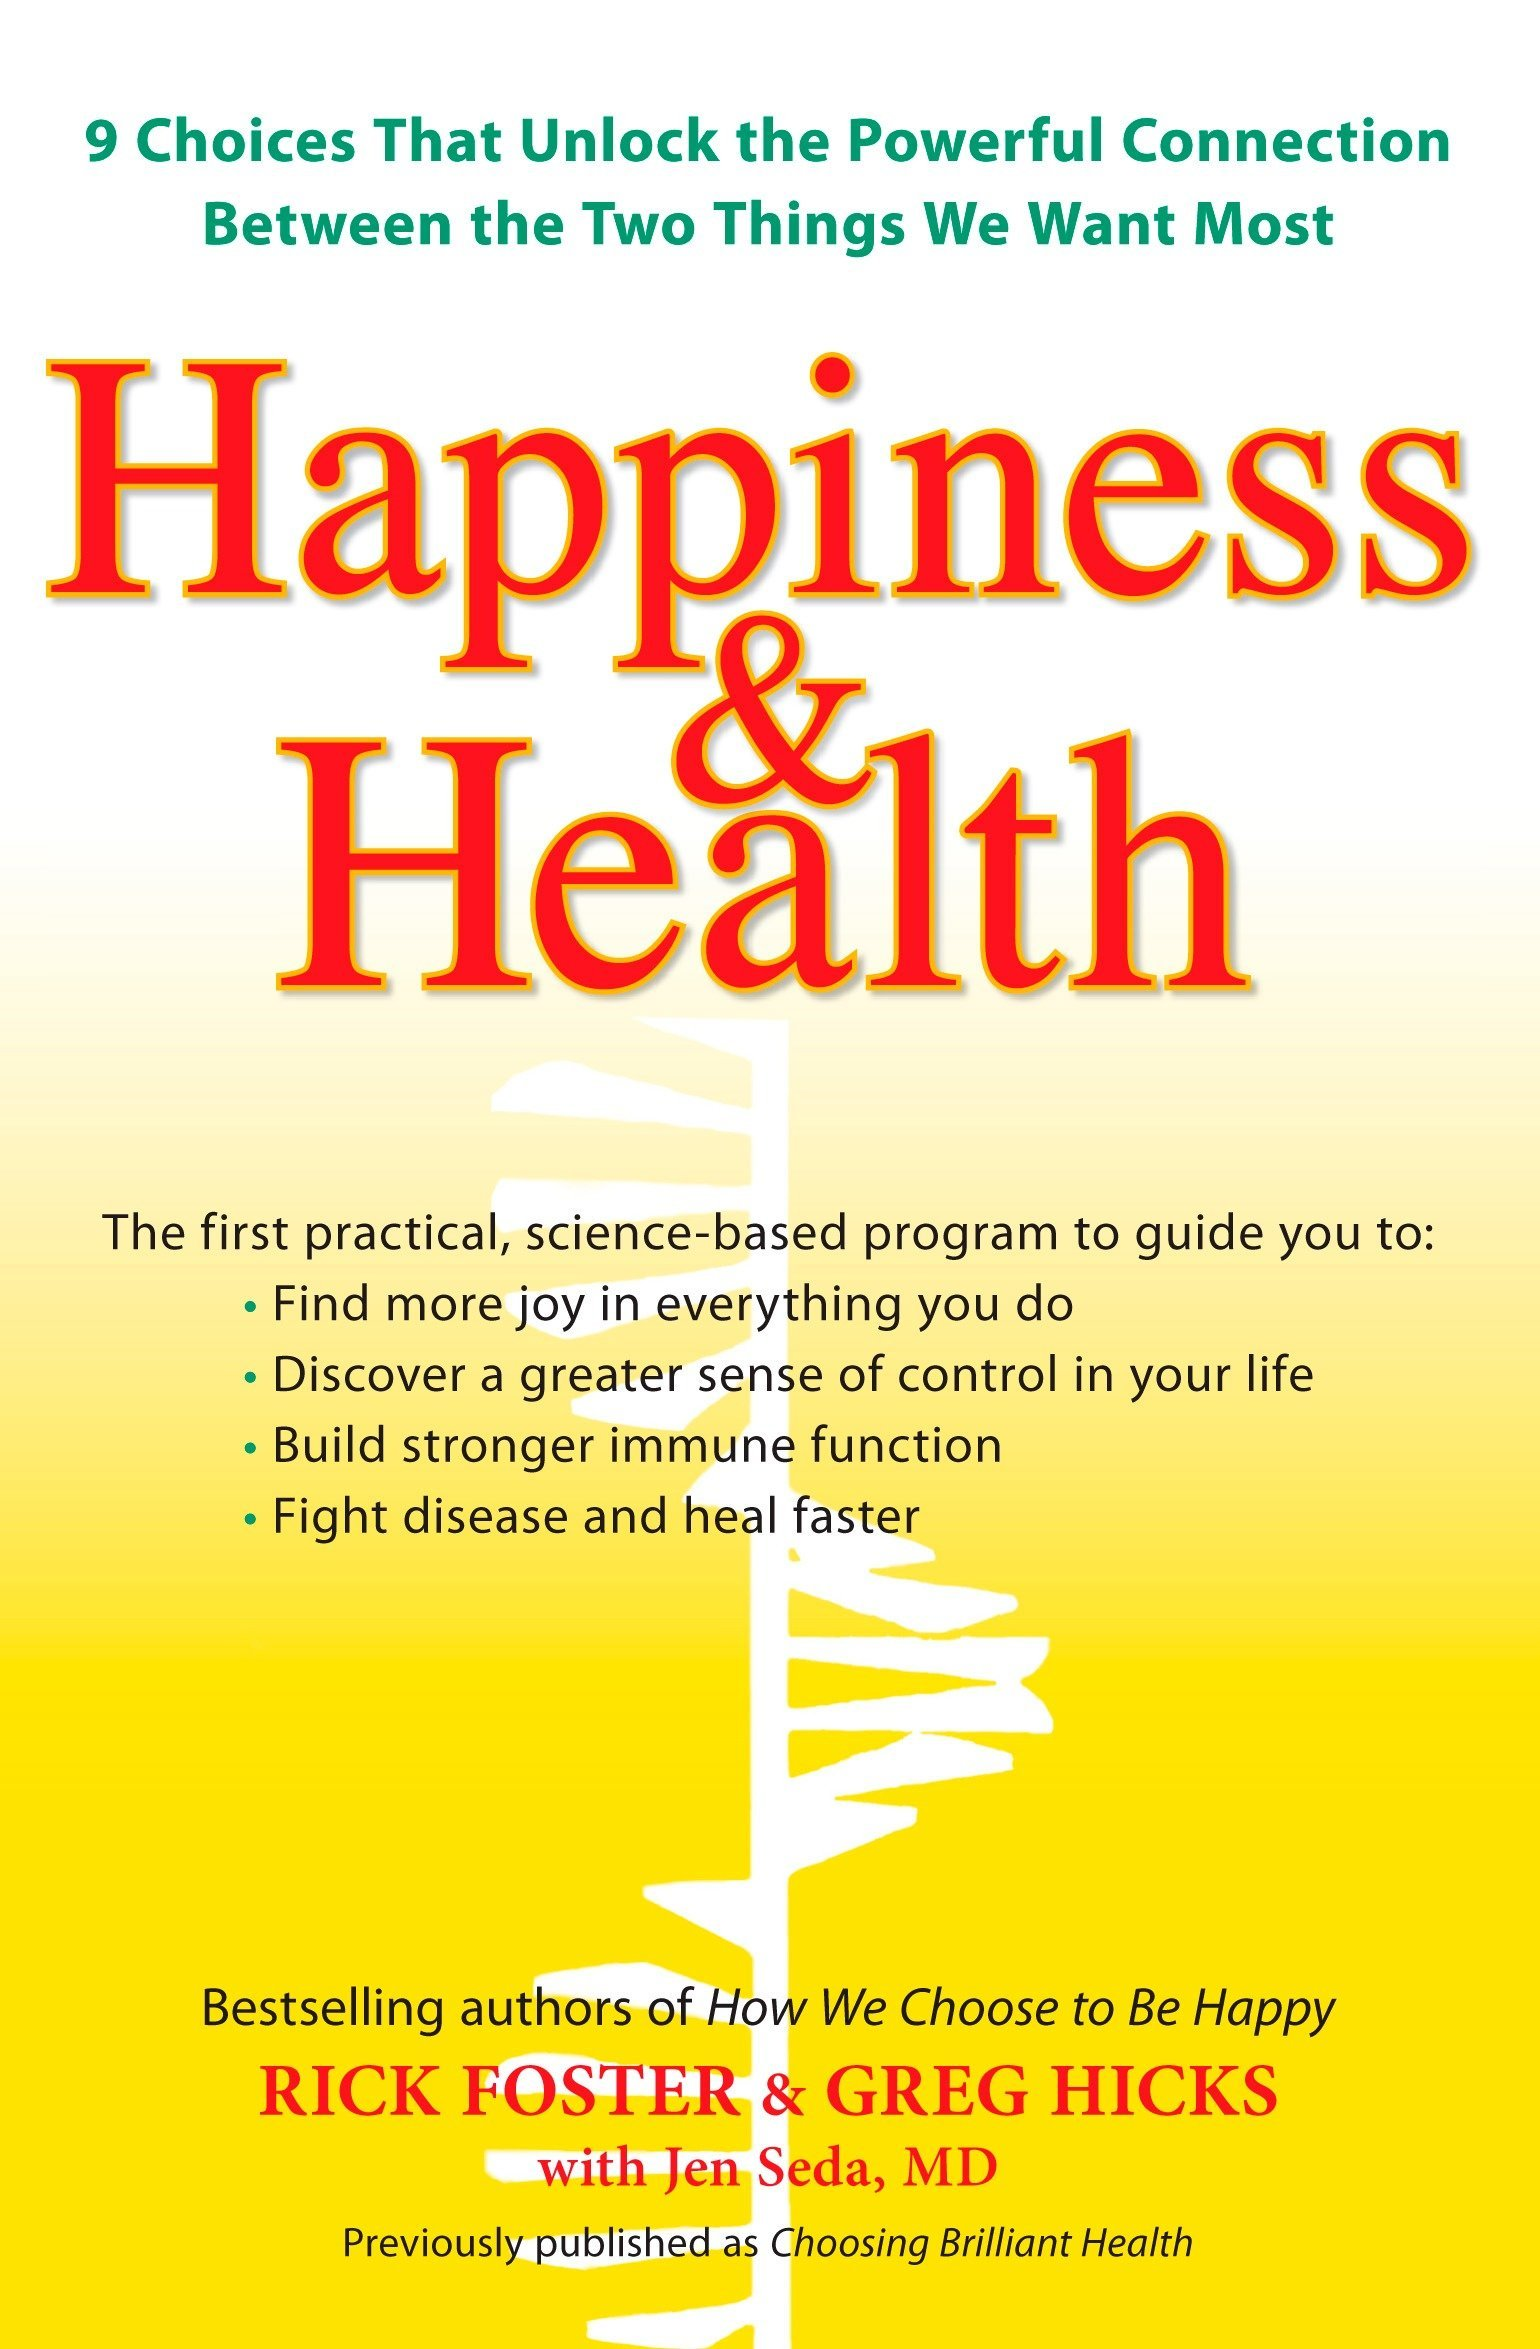 Read Online Happiness & Health: 9 Choices That Unlock the Powerful Connection Between the TwoThings We Want Most PDF